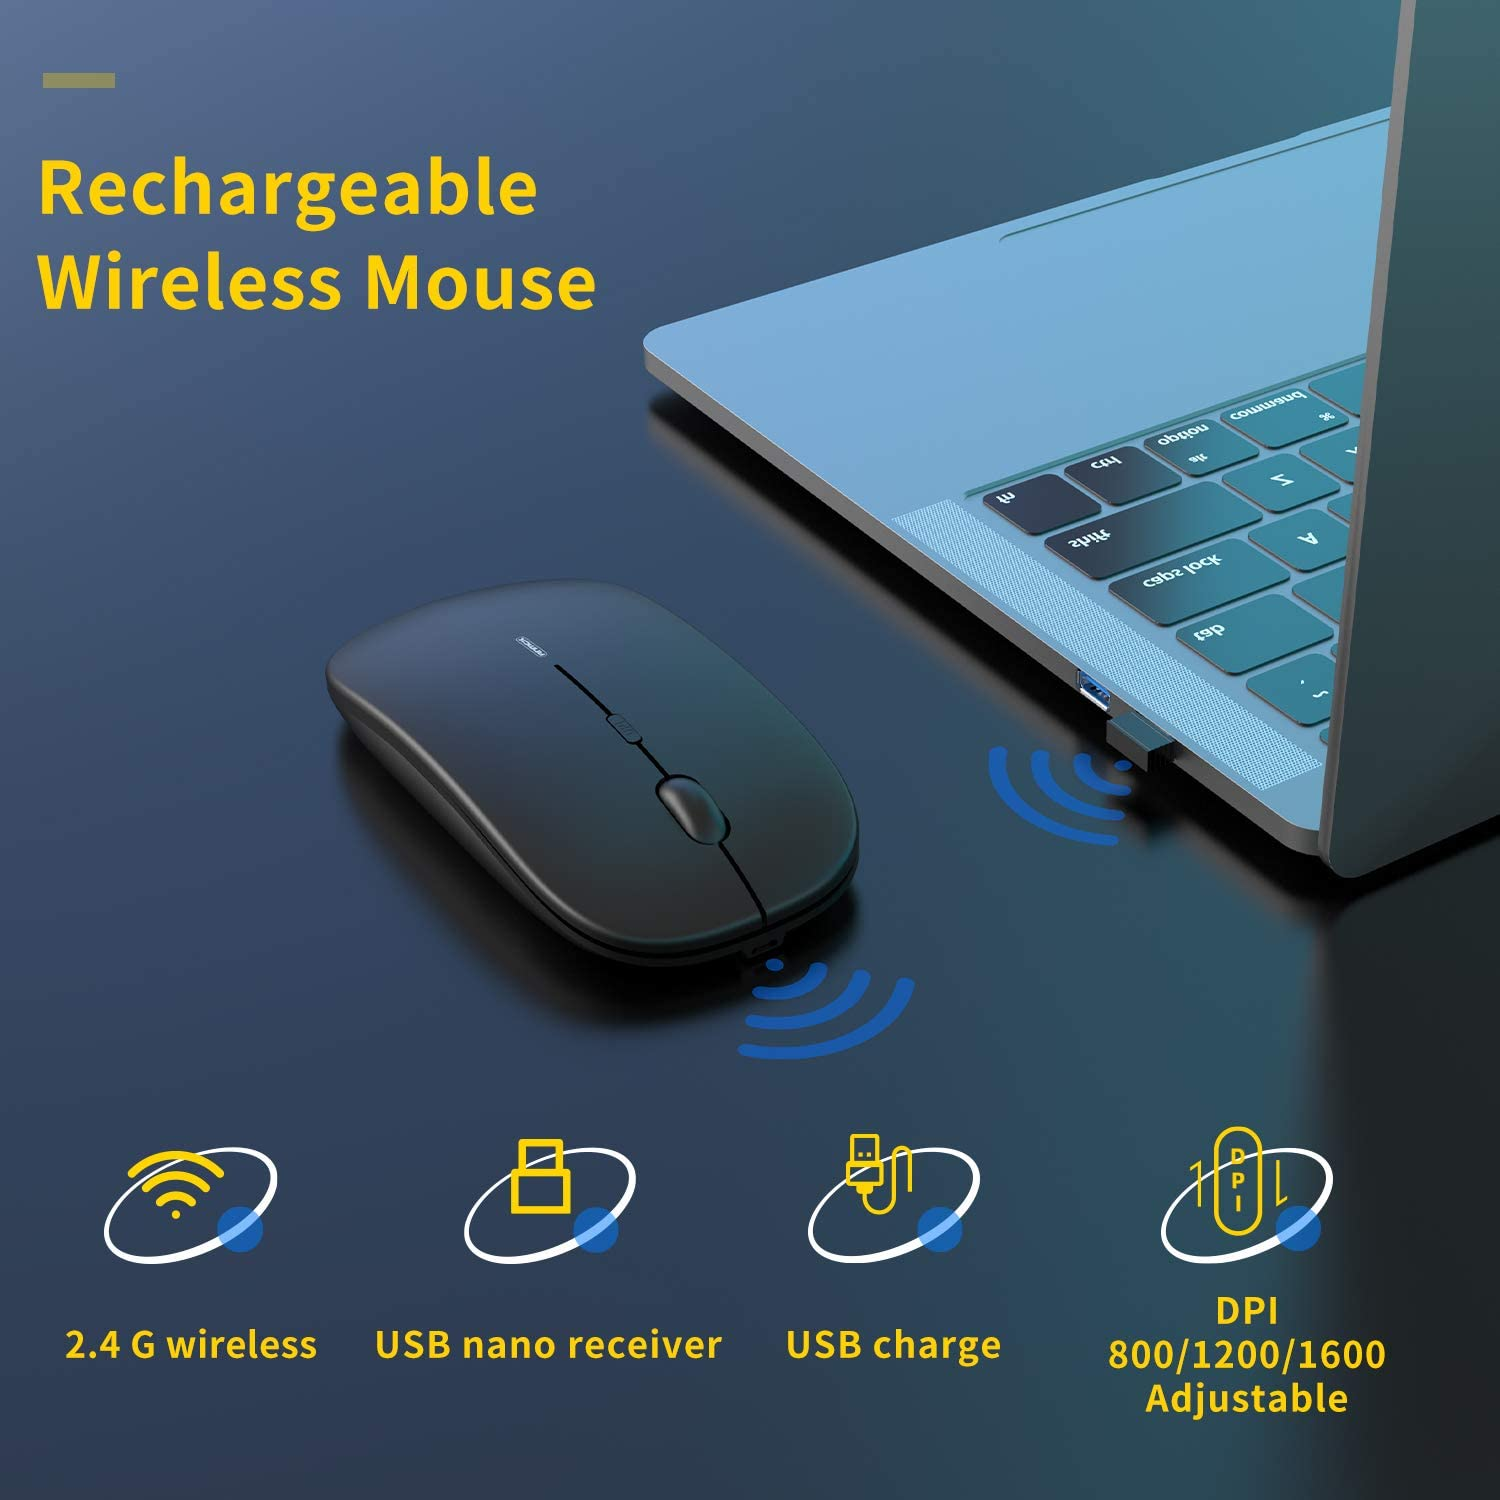 Anmck Wireless Silent Rechargeable Mouse for Laptop or Computer WAS £9.99 NOW £4.99 w/code 9CWBXKQ8 @ Amazon